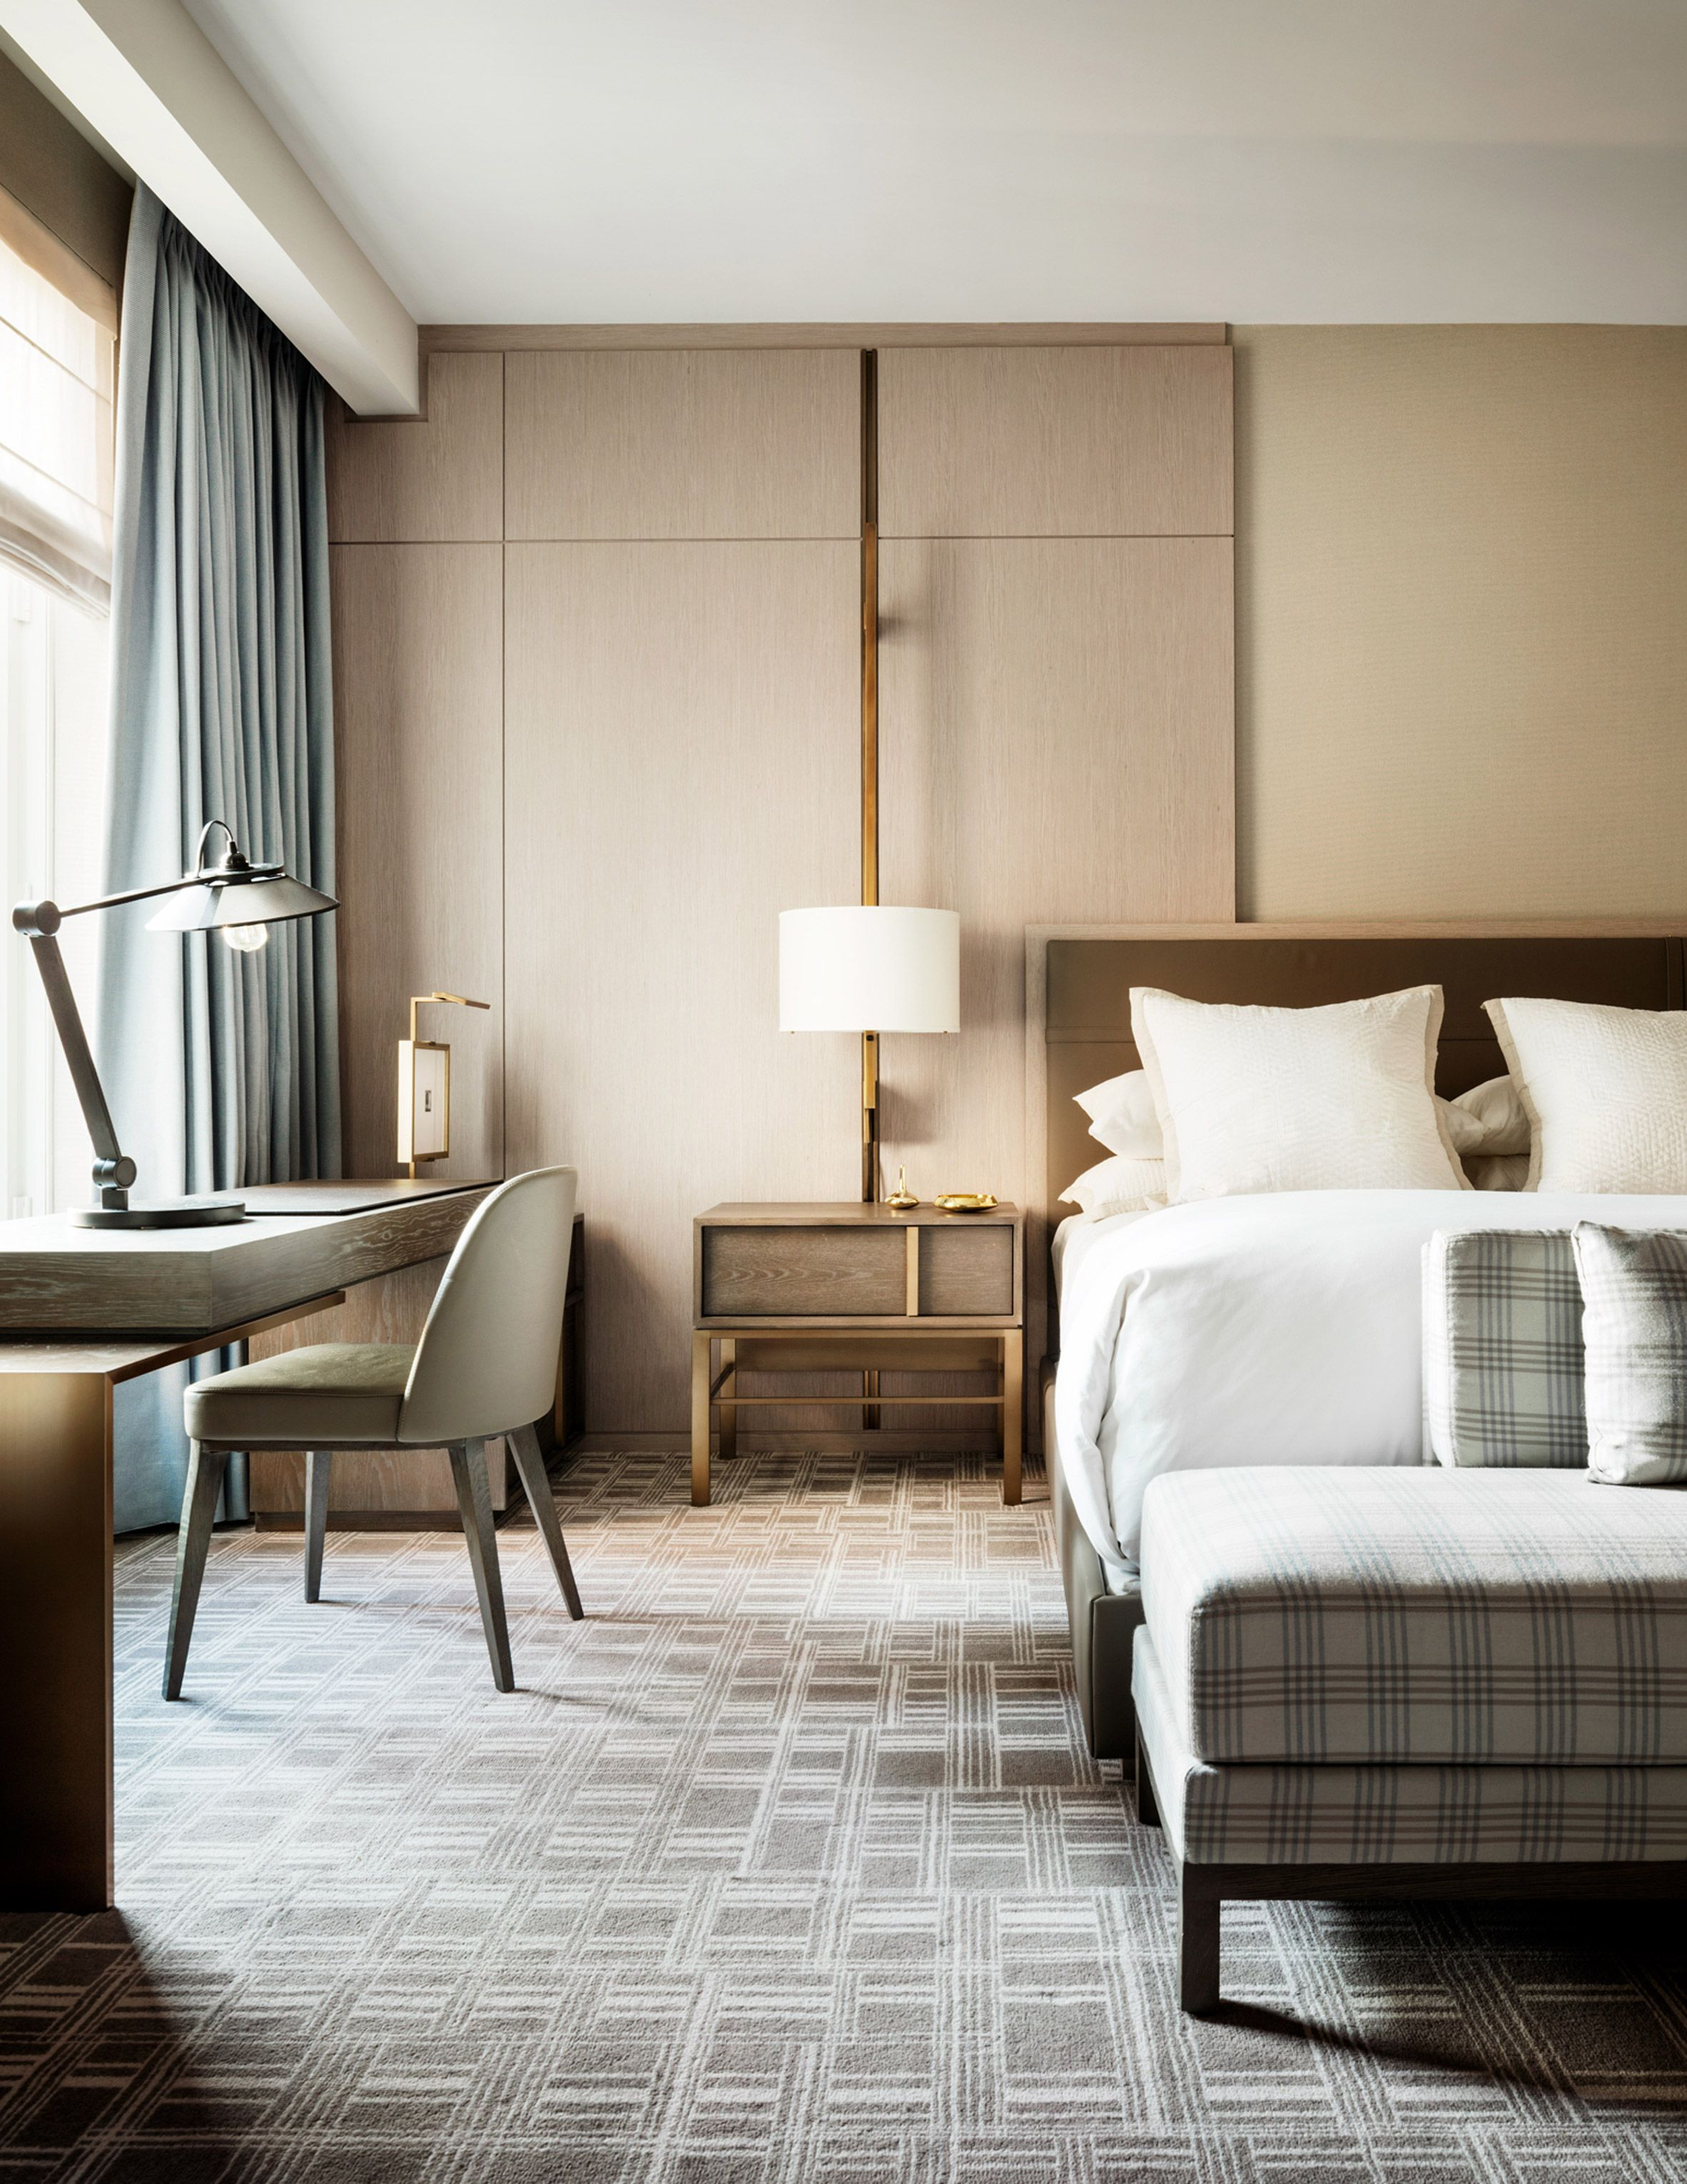 Hotel Room Designs: Four Seasons Downtown By Yabu Pushelberg